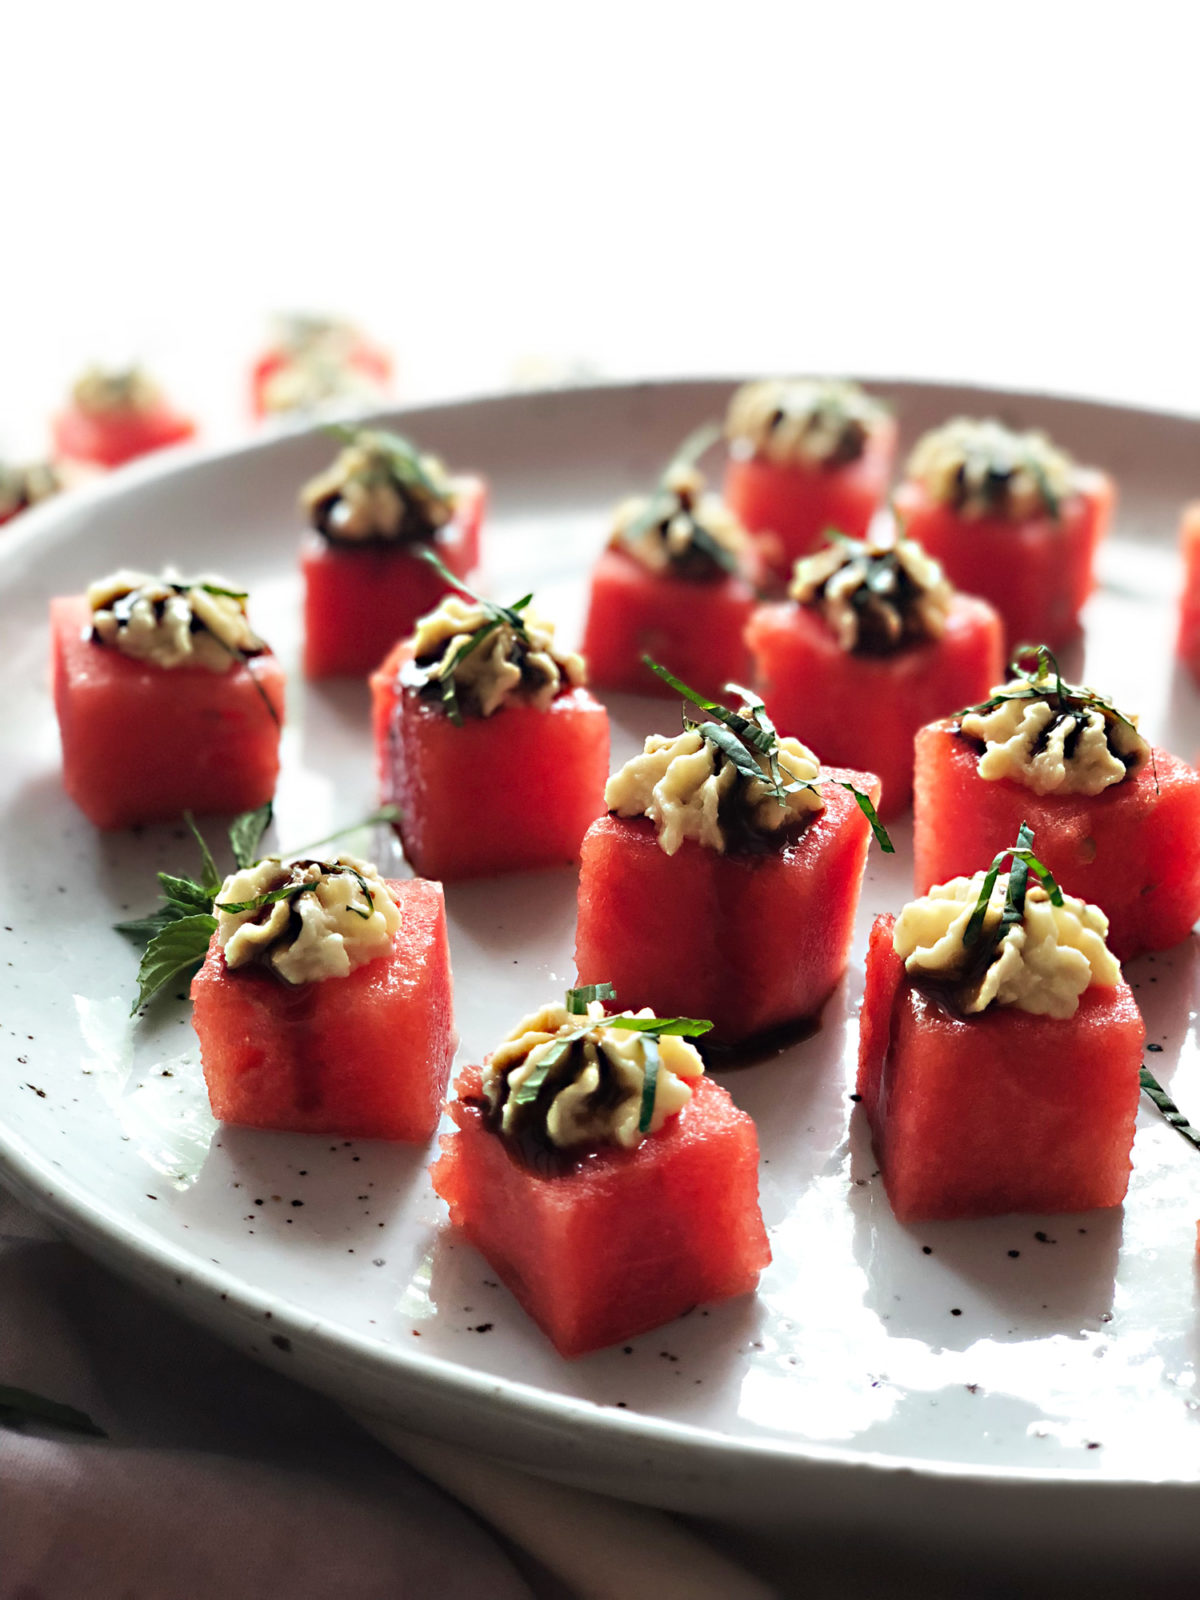 Watermelon Bites with Miso, Pine Nuts, and White Truffle Balsamic Glaze by Marisa Ford — Delicious & Sons